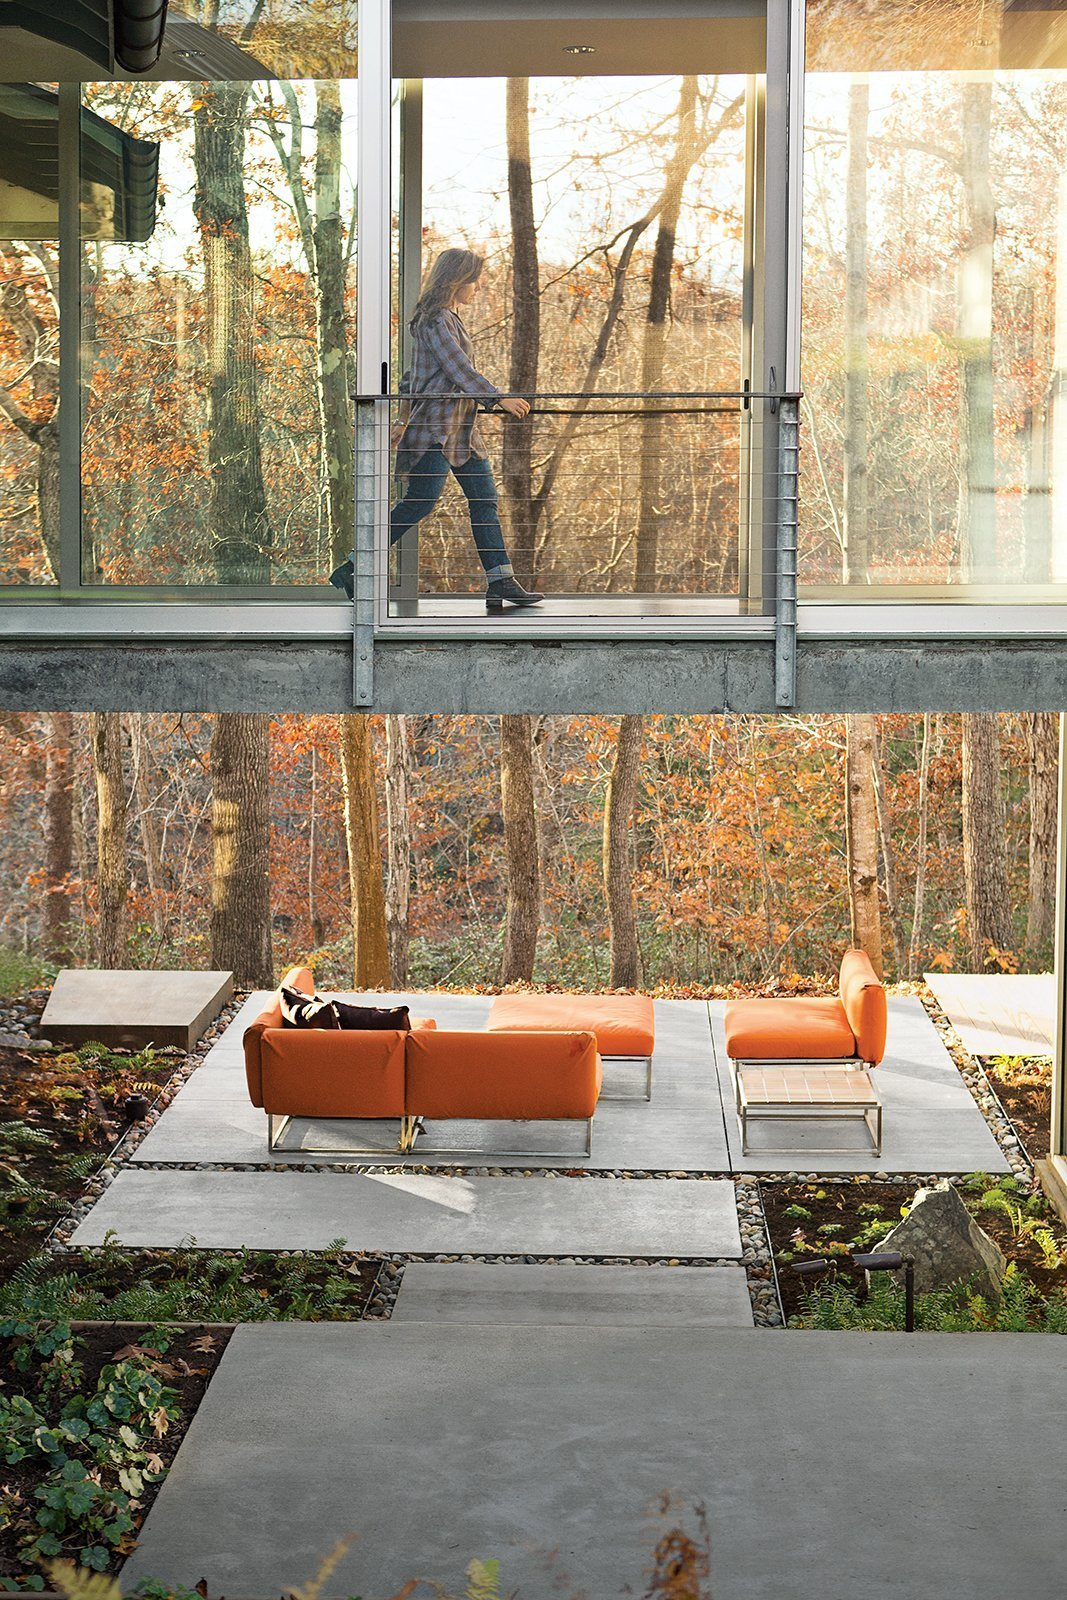 Outdoor, Walkways, Trees, Shrubs, Gardens, Concrete Patio, Porch, Deck, Landscape Lighting, and Boulders Anna Boeschenstein of Grounded Landscape Architecture & Design helped her friend Elizabeth Birdsall design this woodland home in Charlottesville, Virginia with plenty of commodious outdoor spaces like this patio that looks out to the trees.  Photo 4 of 8 in 7 Homes With Beautiful Outdoor Patios